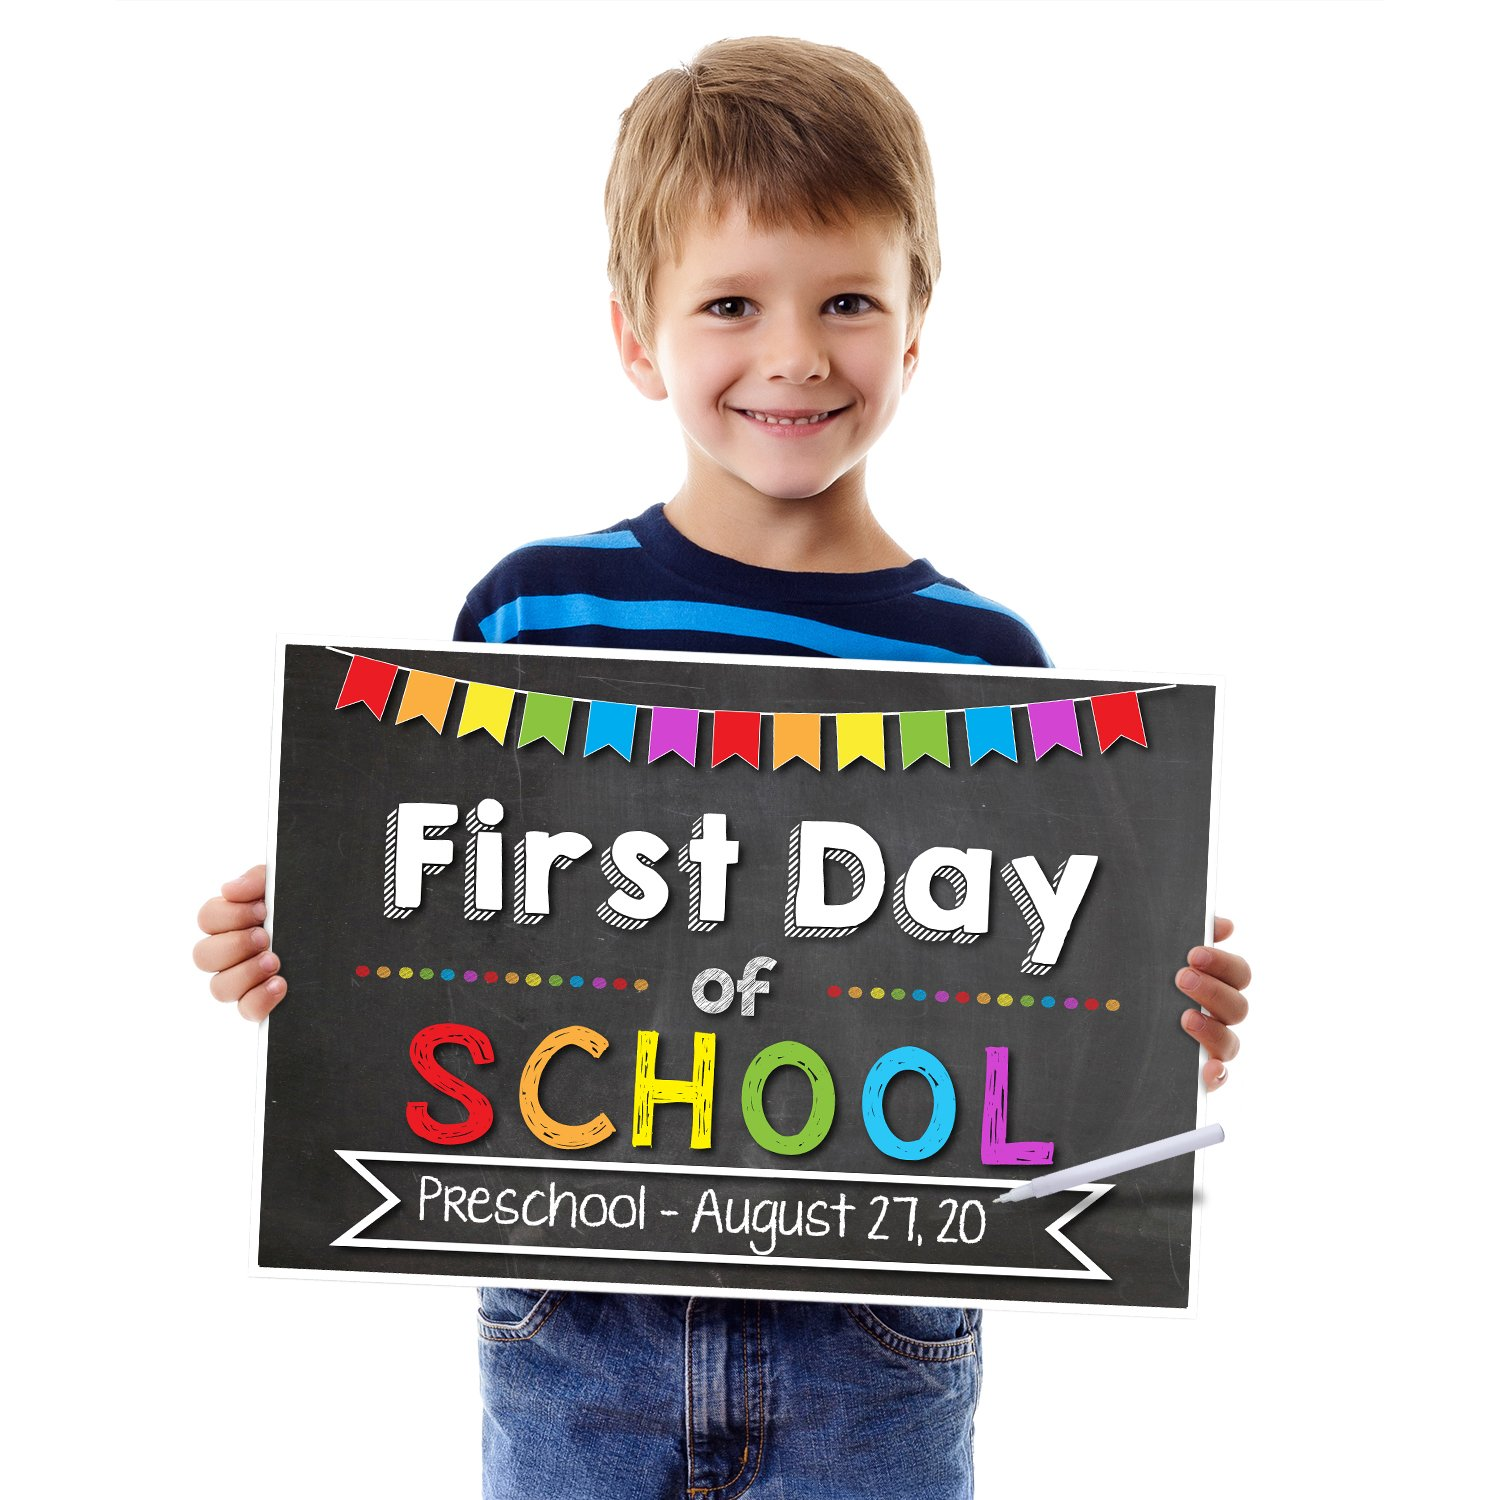 Katie Doodle SG007 1st Day of School Chalkboard Poster Sign-Customizable (Includes Chalk Writer), 12x18 inches, Black (Chalkboard Style)